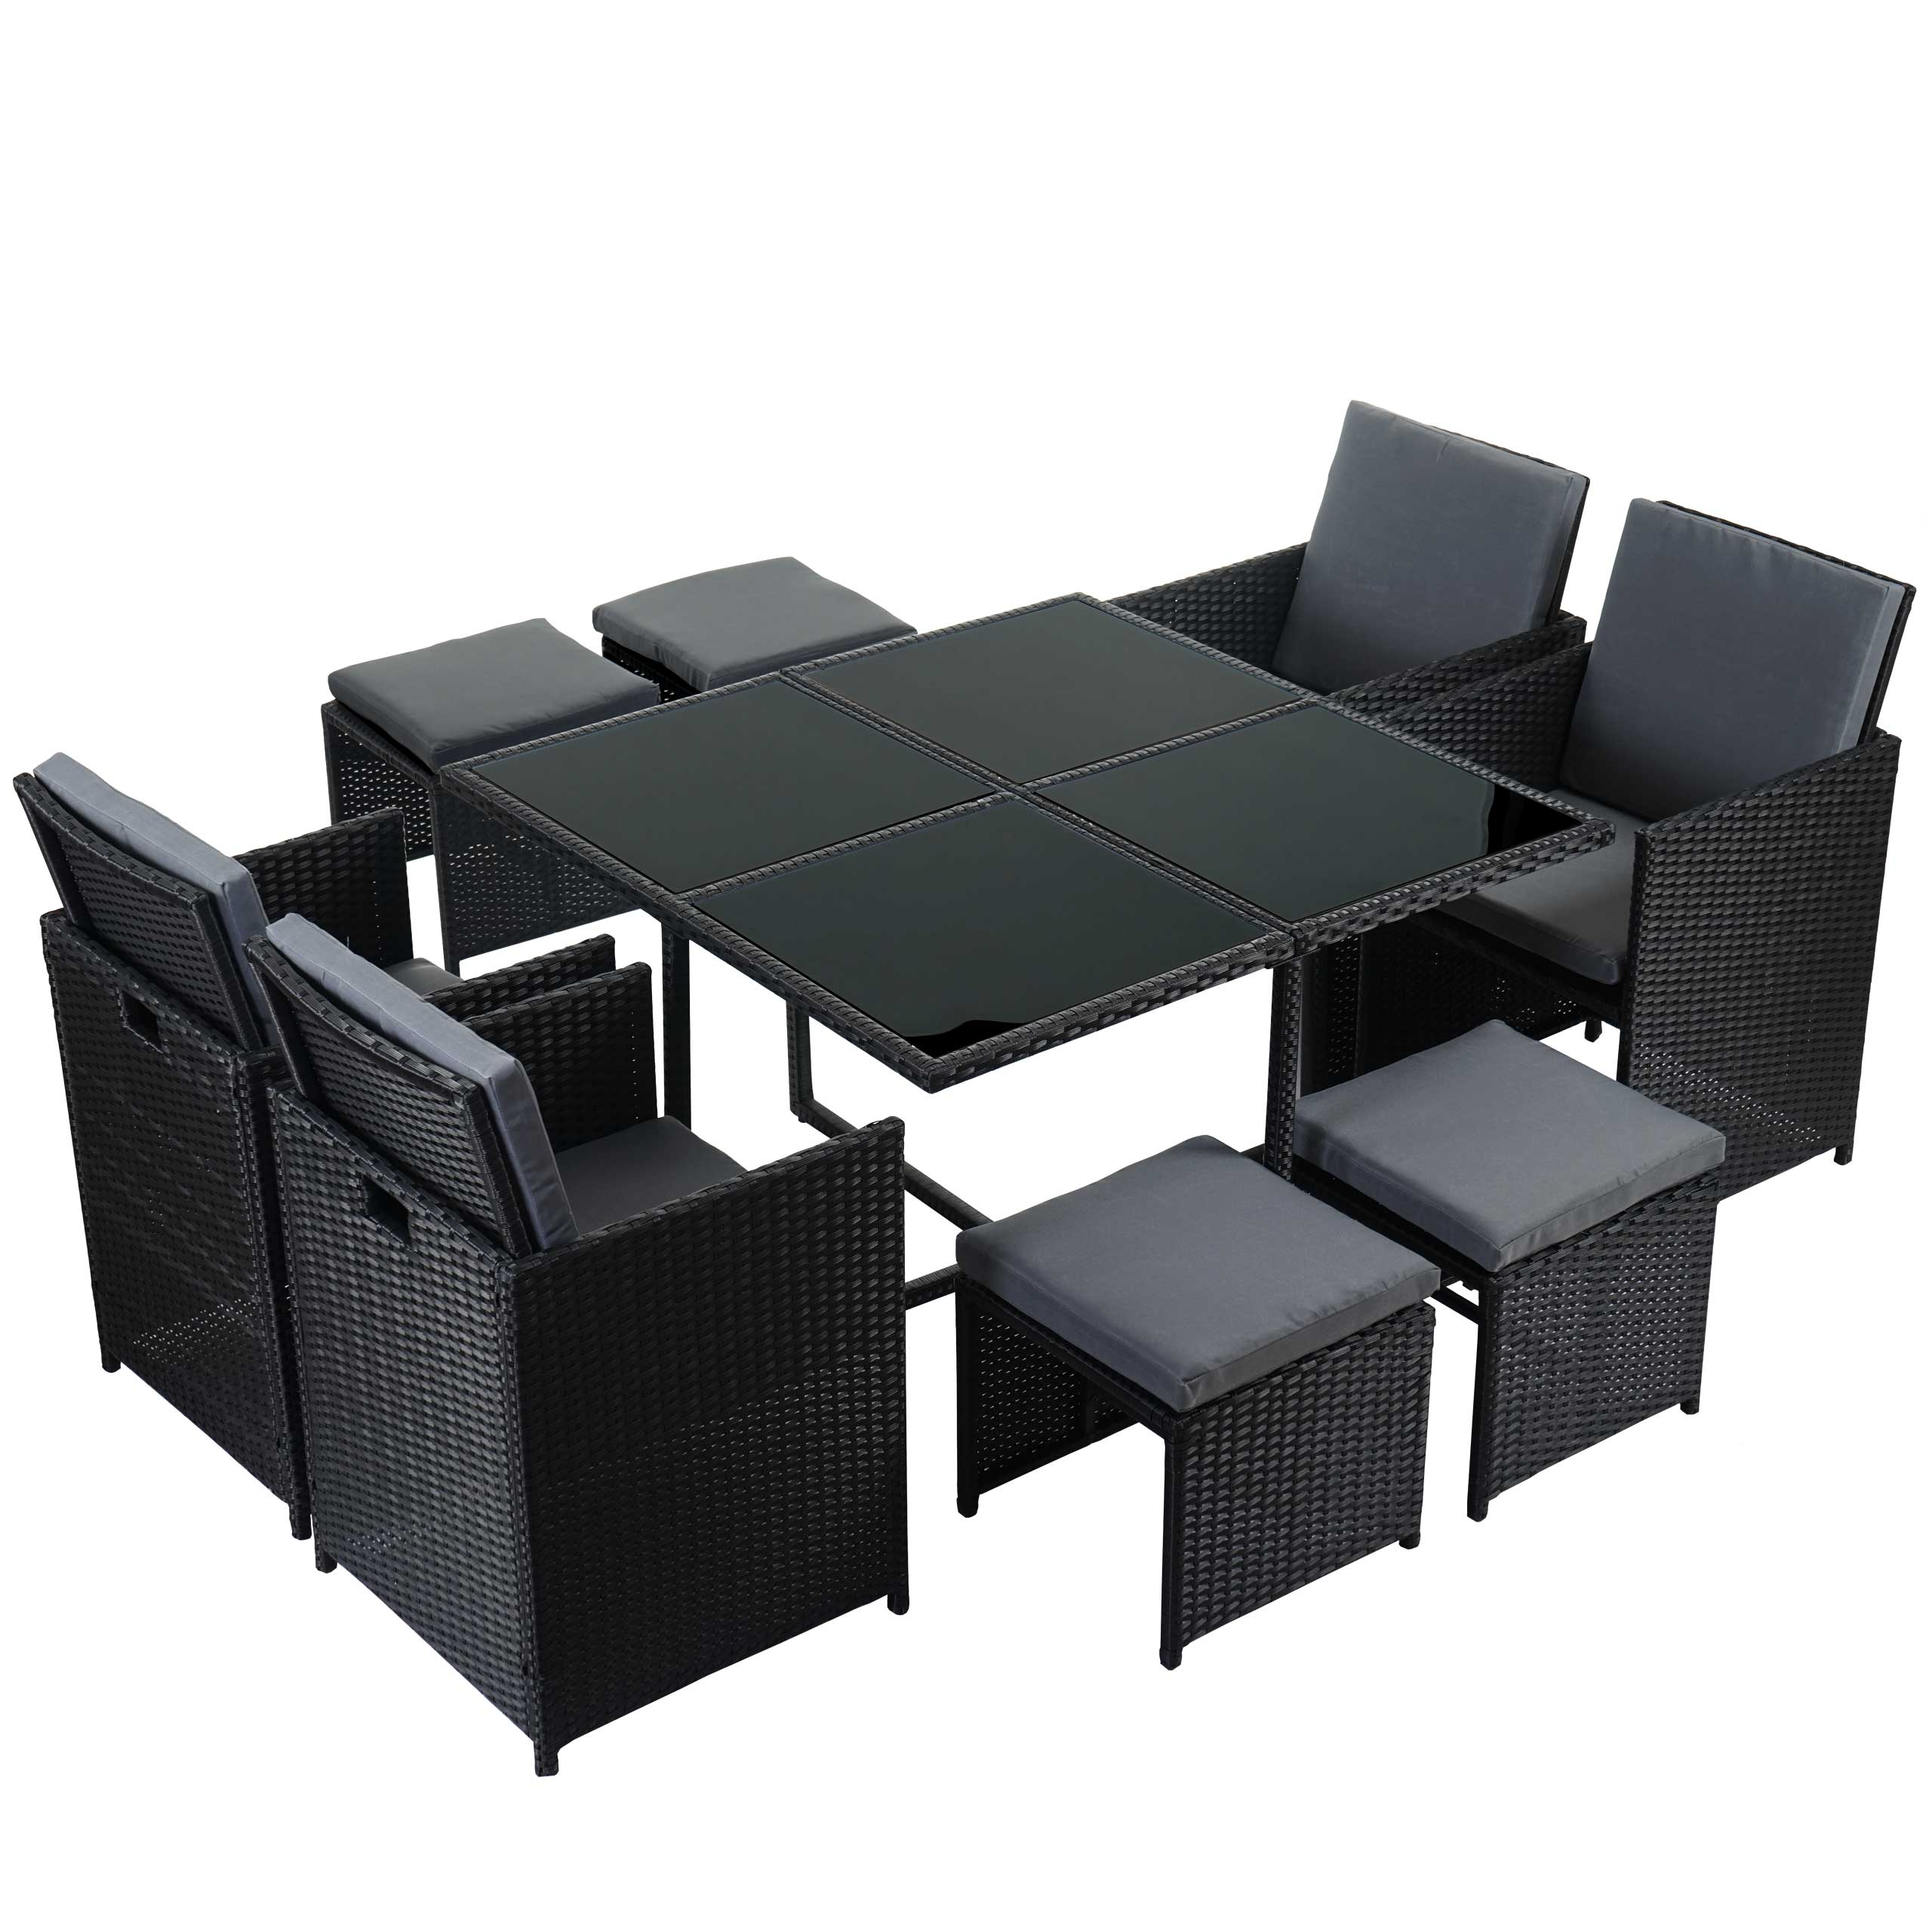 poly rattan garten garnitur kreta lounge set sitzgruppe 4 st hle schwarz kissen grau. Black Bedroom Furniture Sets. Home Design Ideas